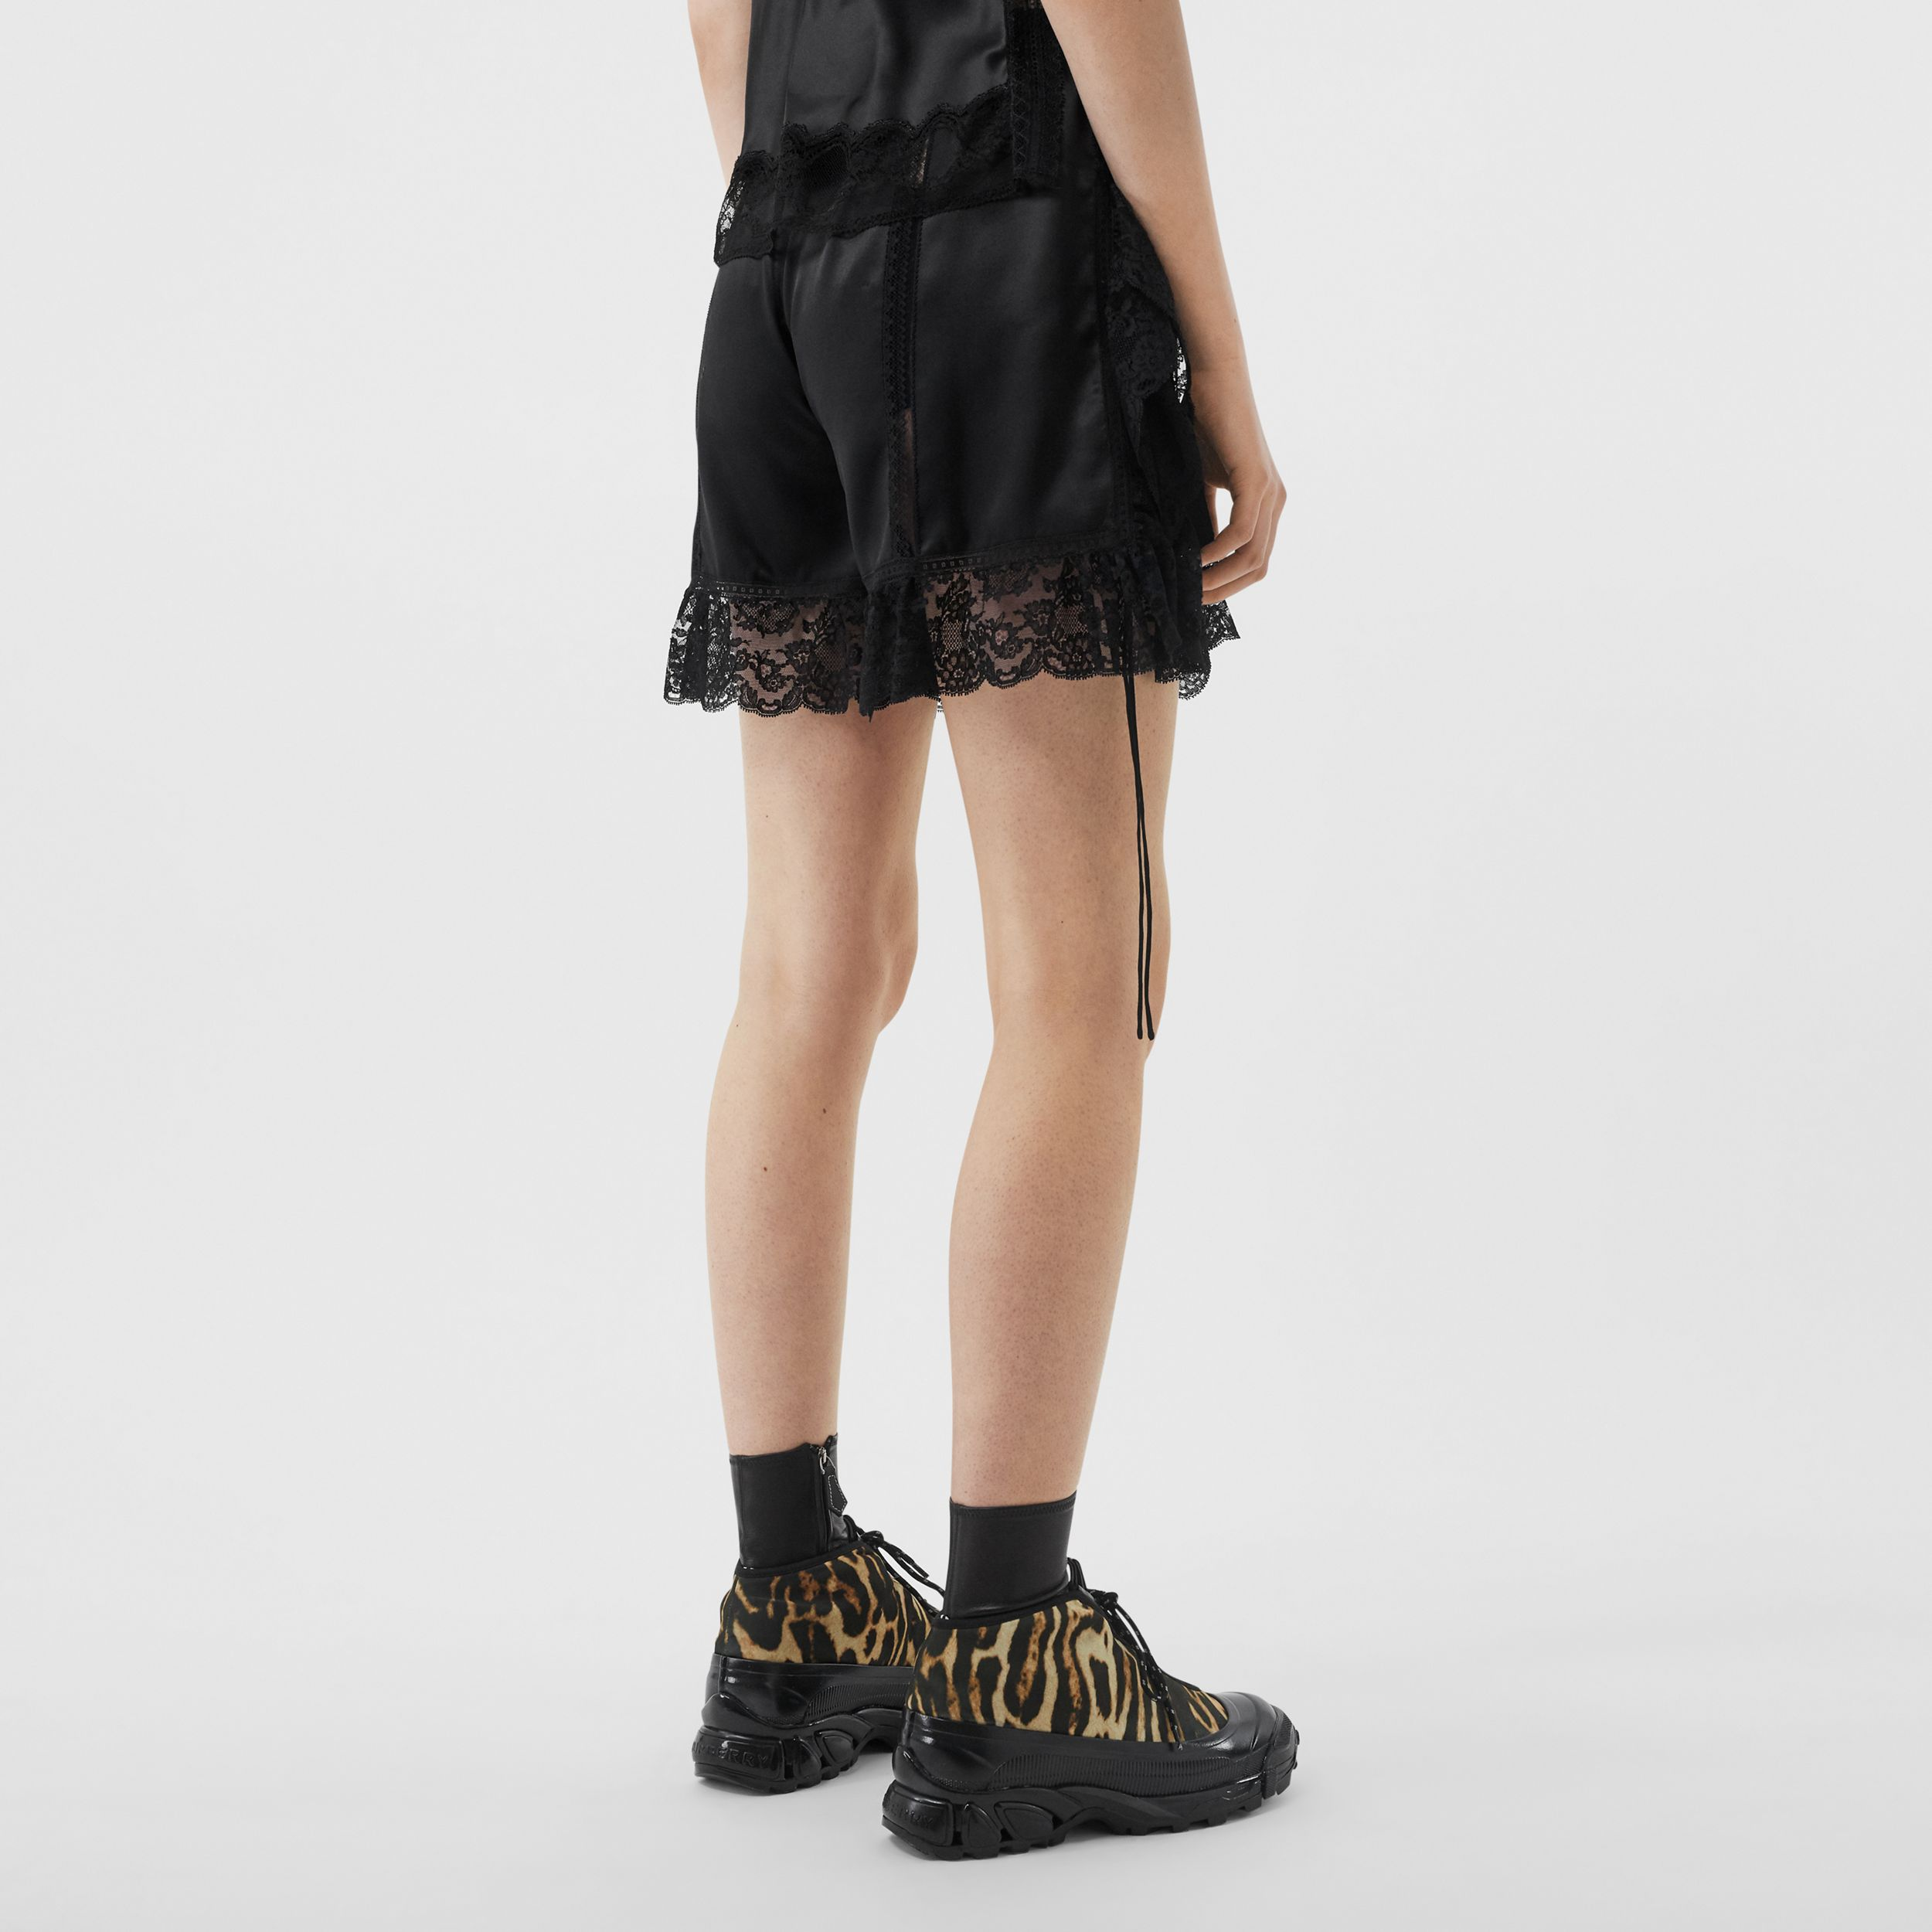 Bottle Cap Detail Satin and Lace Shorts in Black - Women | Burberry - 3